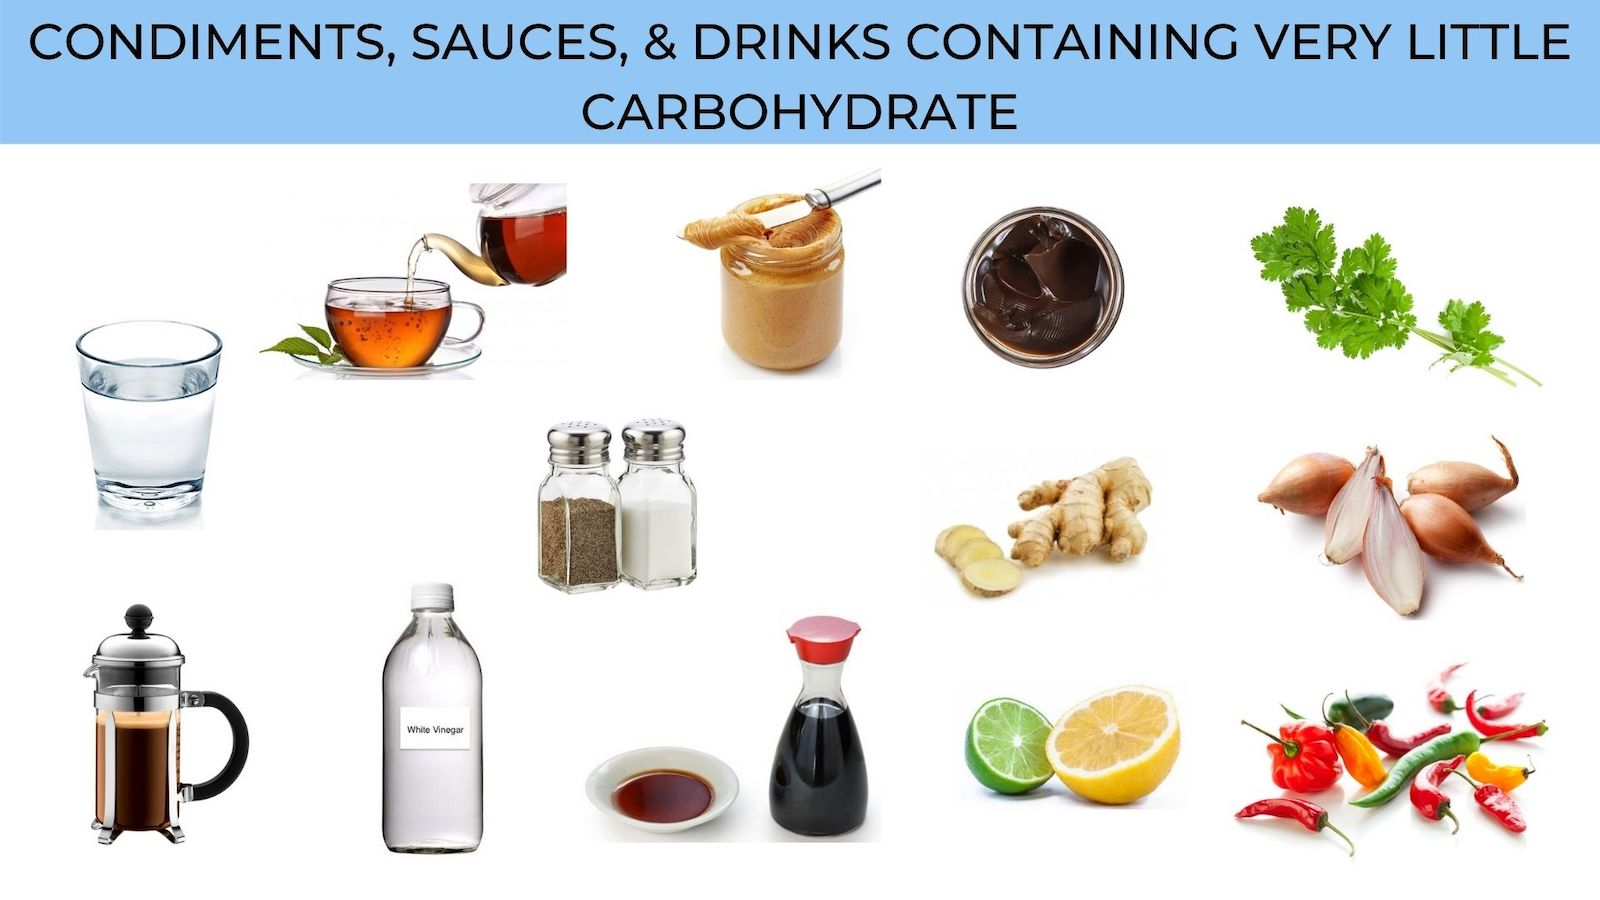 condiments, sauces, and drinks with very little carbohydrate